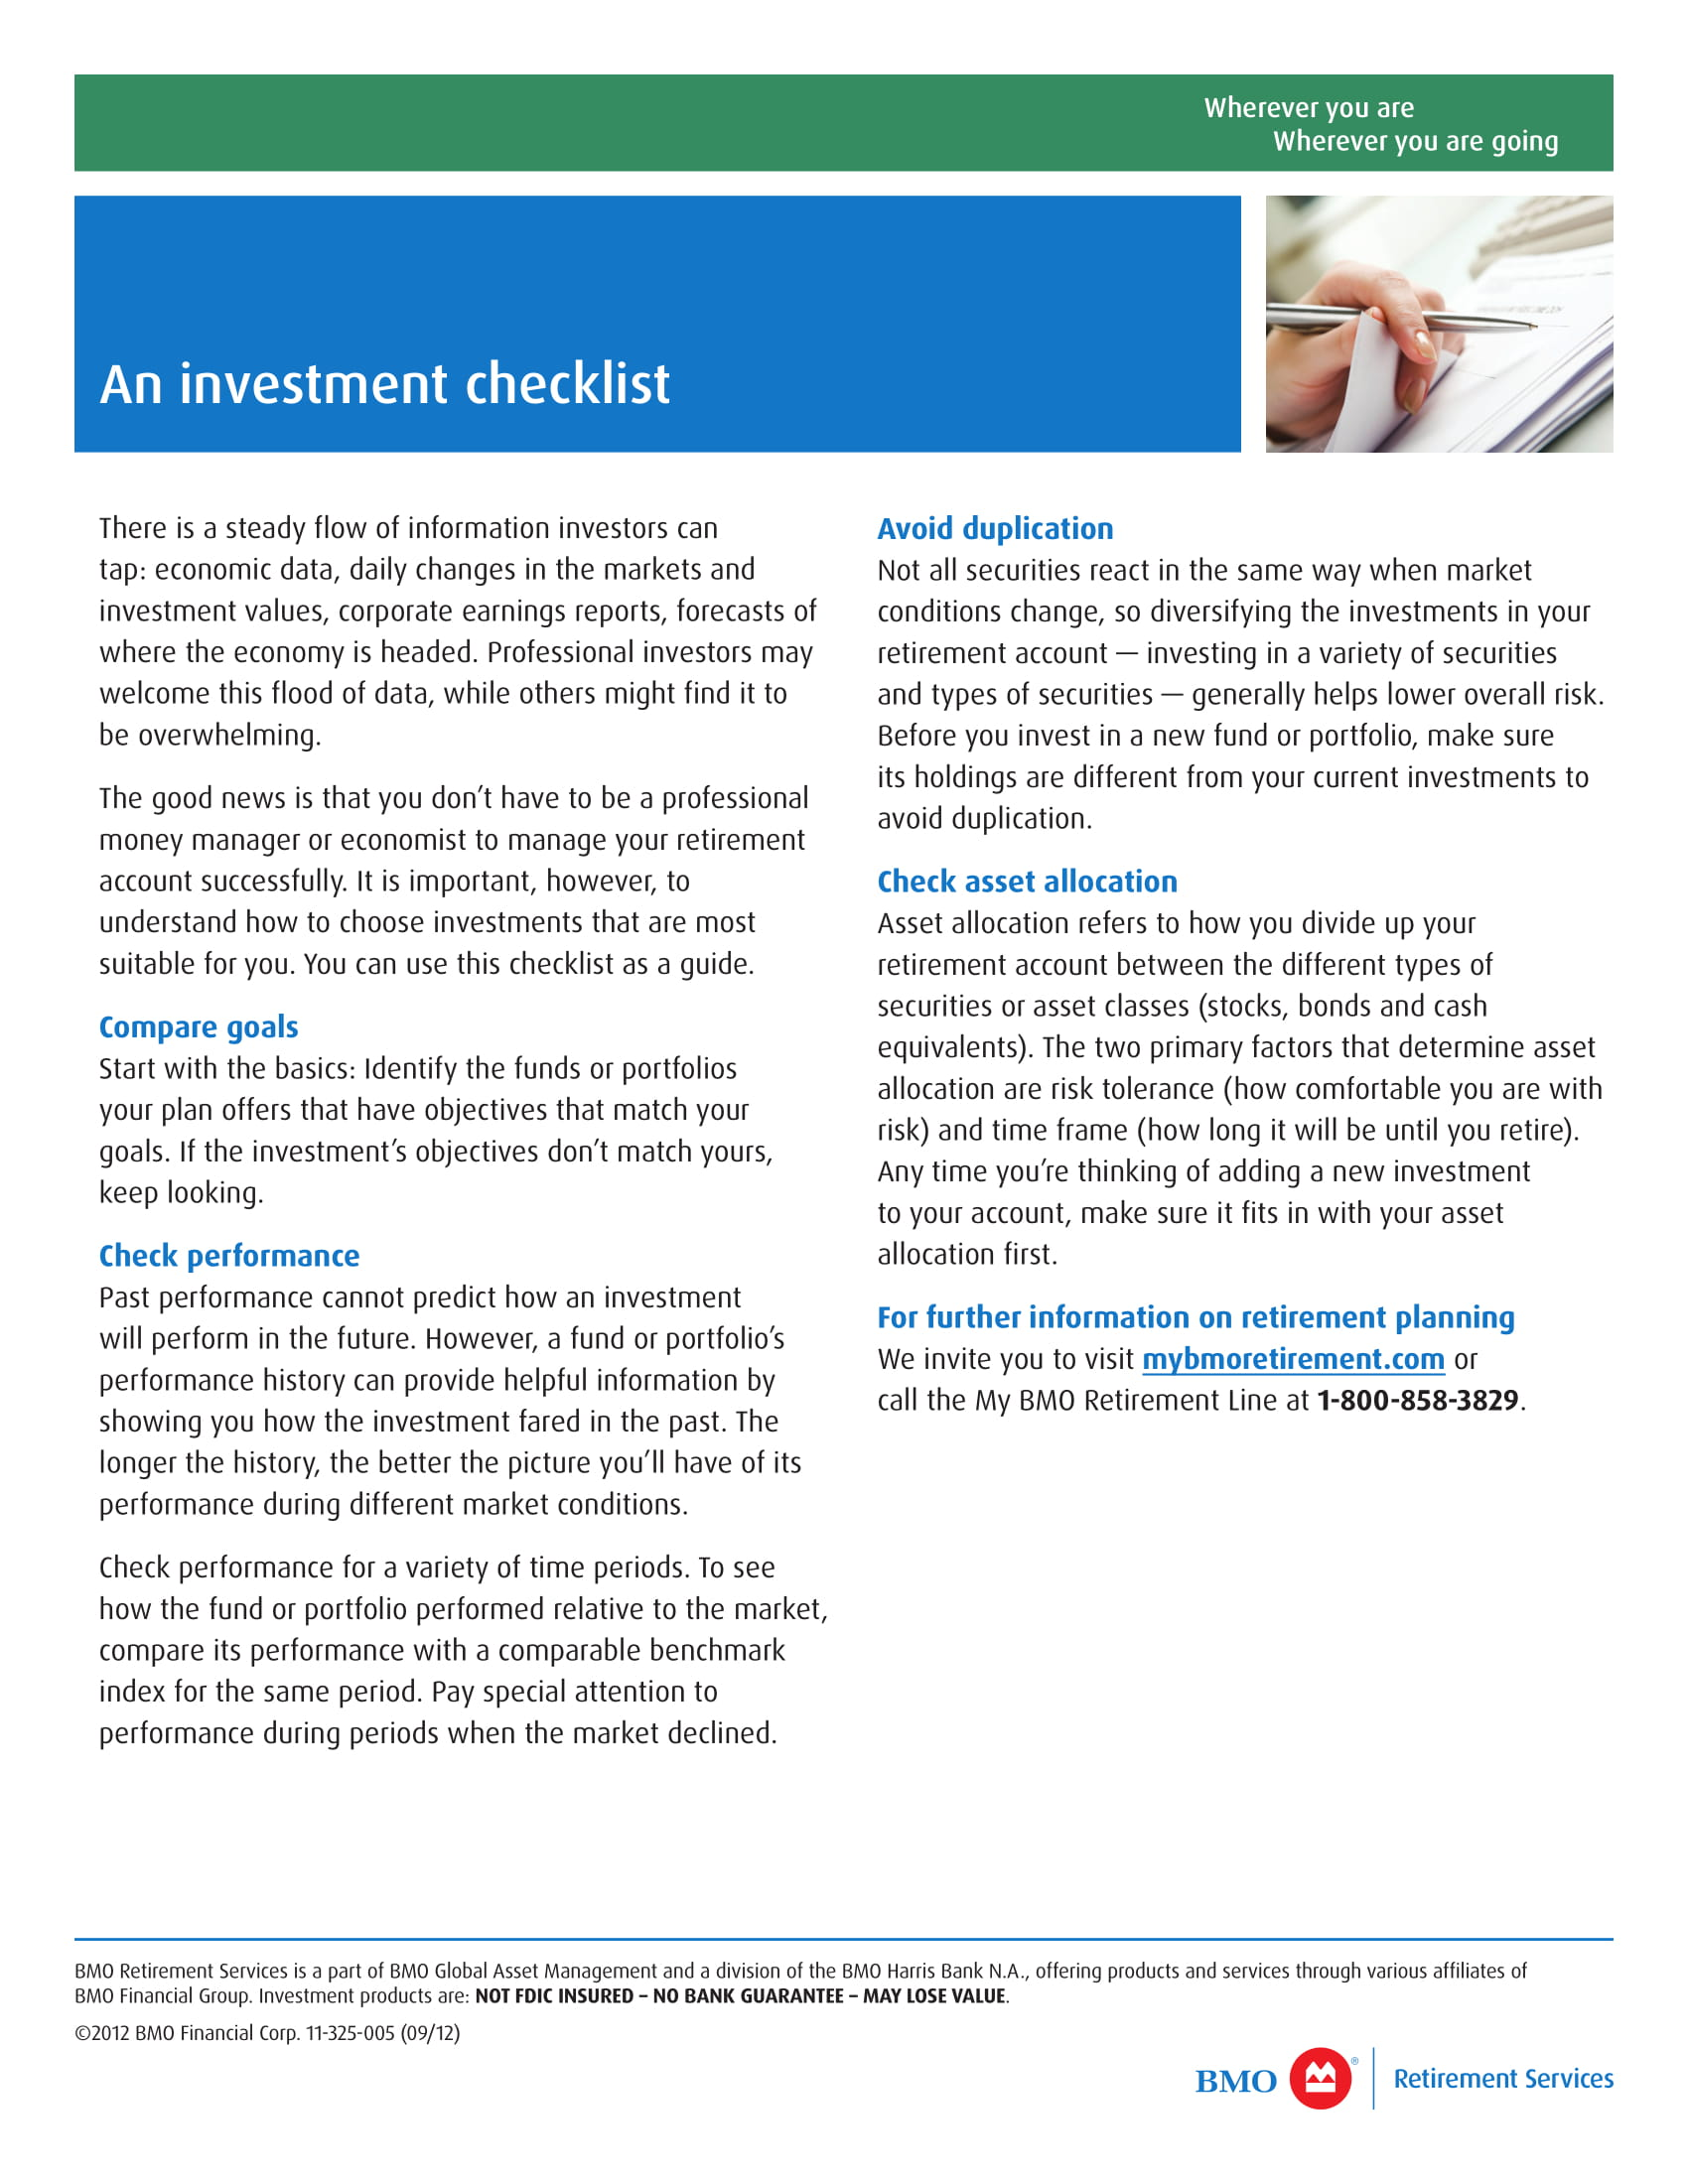 basic investment checklist example